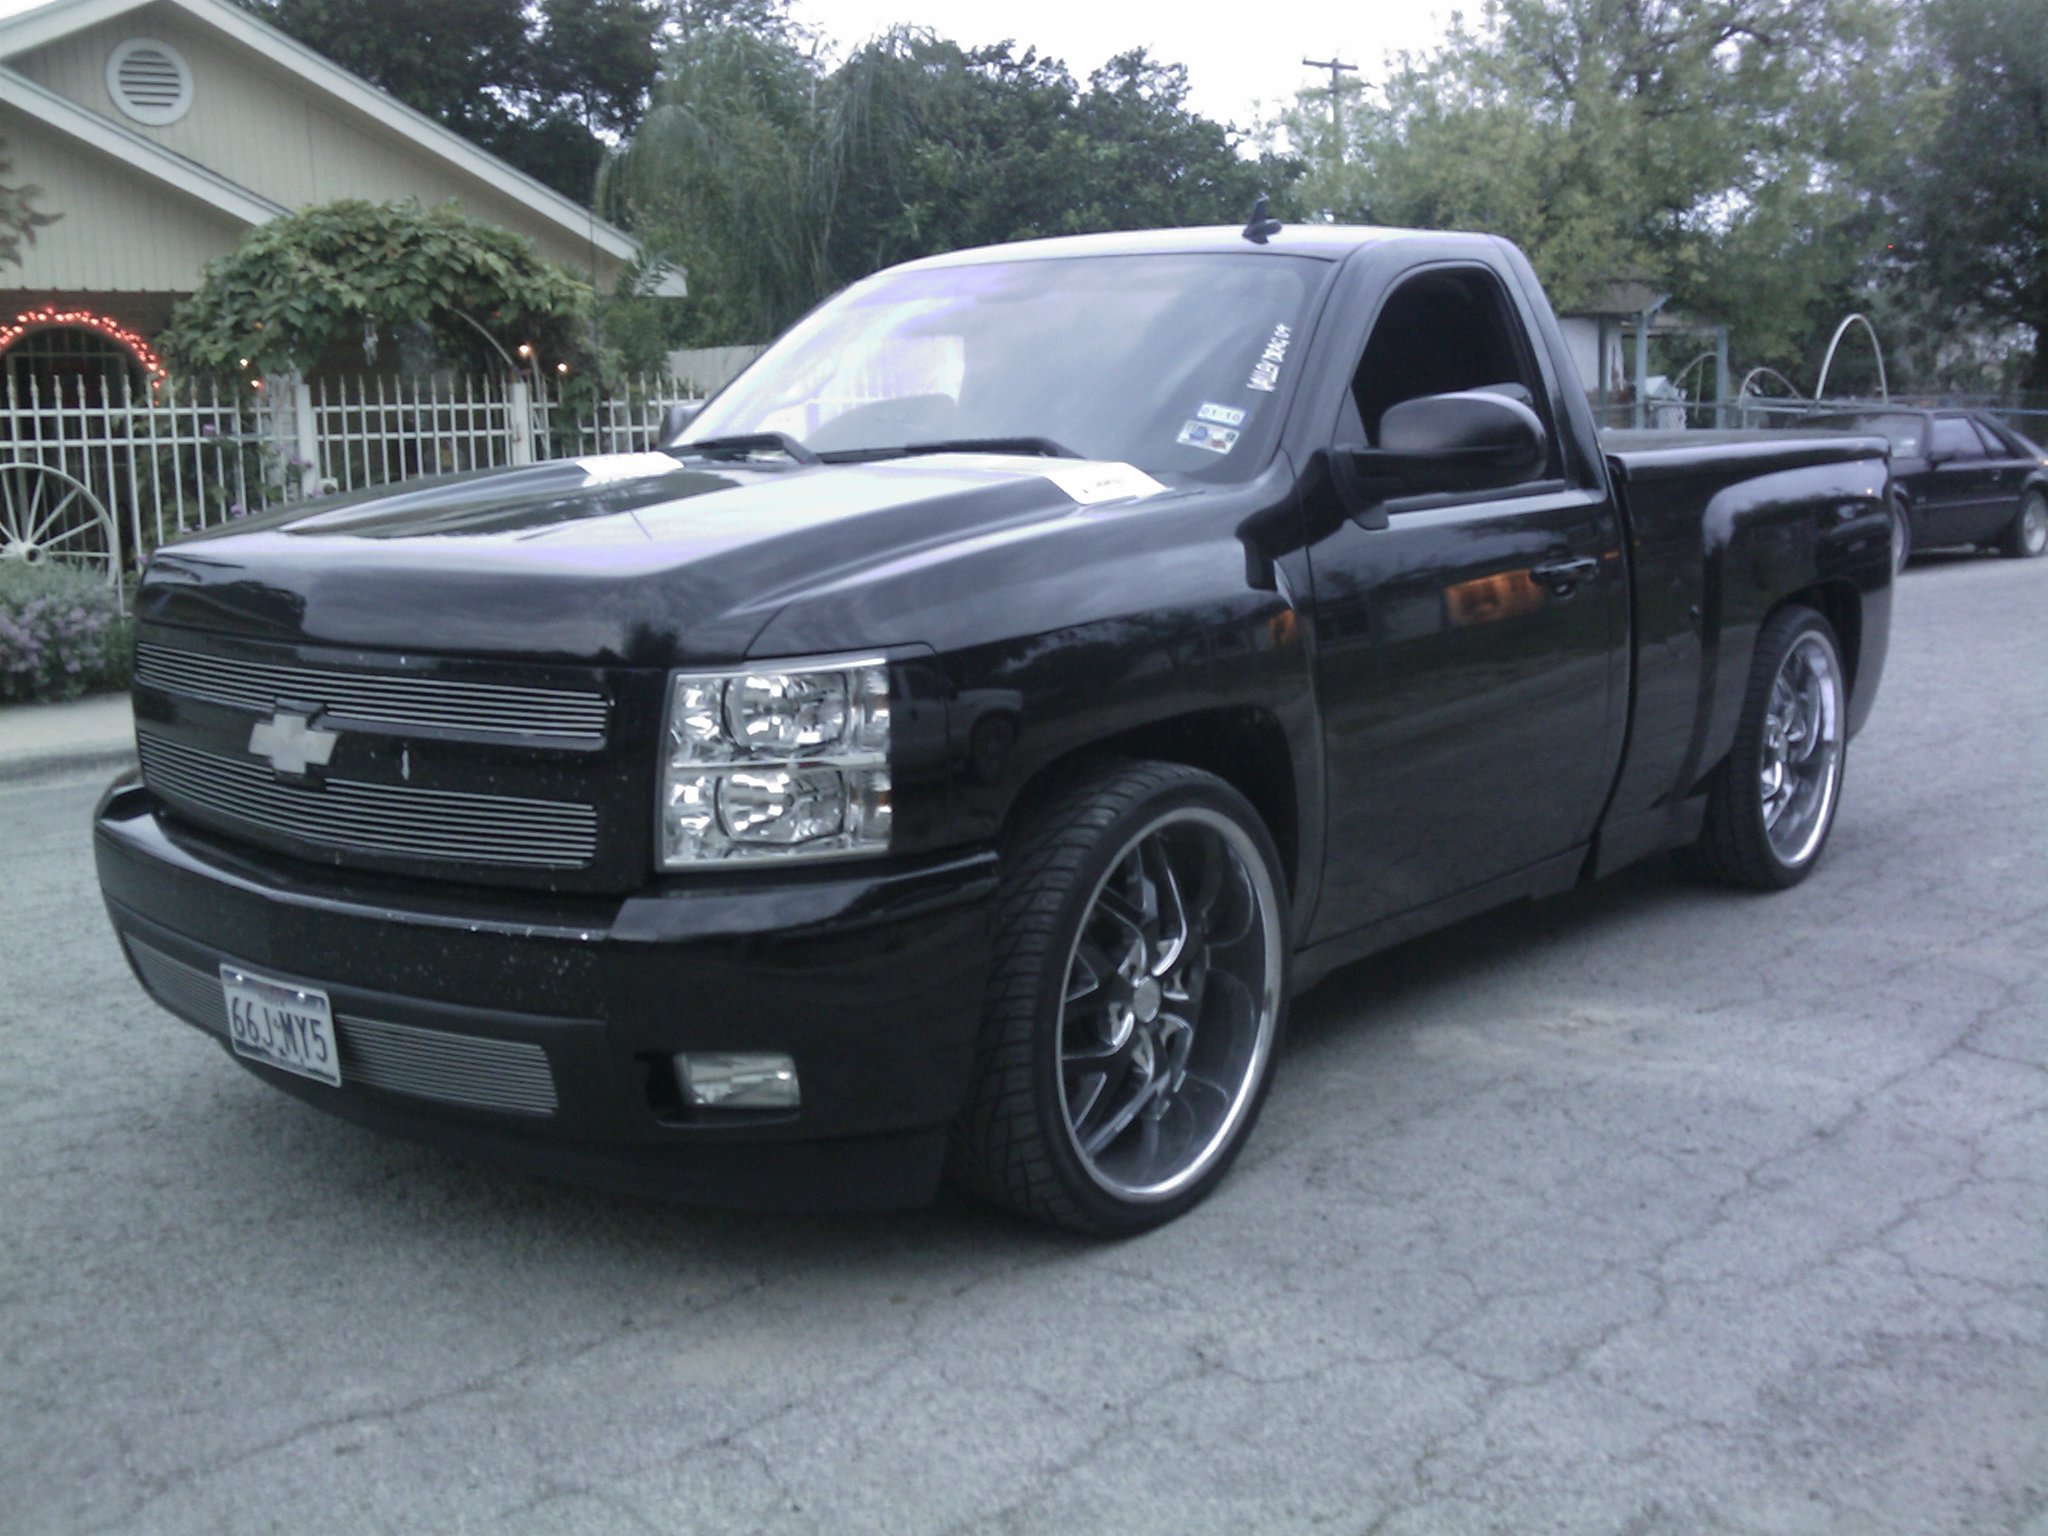 2015 Chevy Reaper >> xxkrazy8ballxx's 2007 Chevrolet Silverado 1500 Regular Cab in M!$$!ON, TX